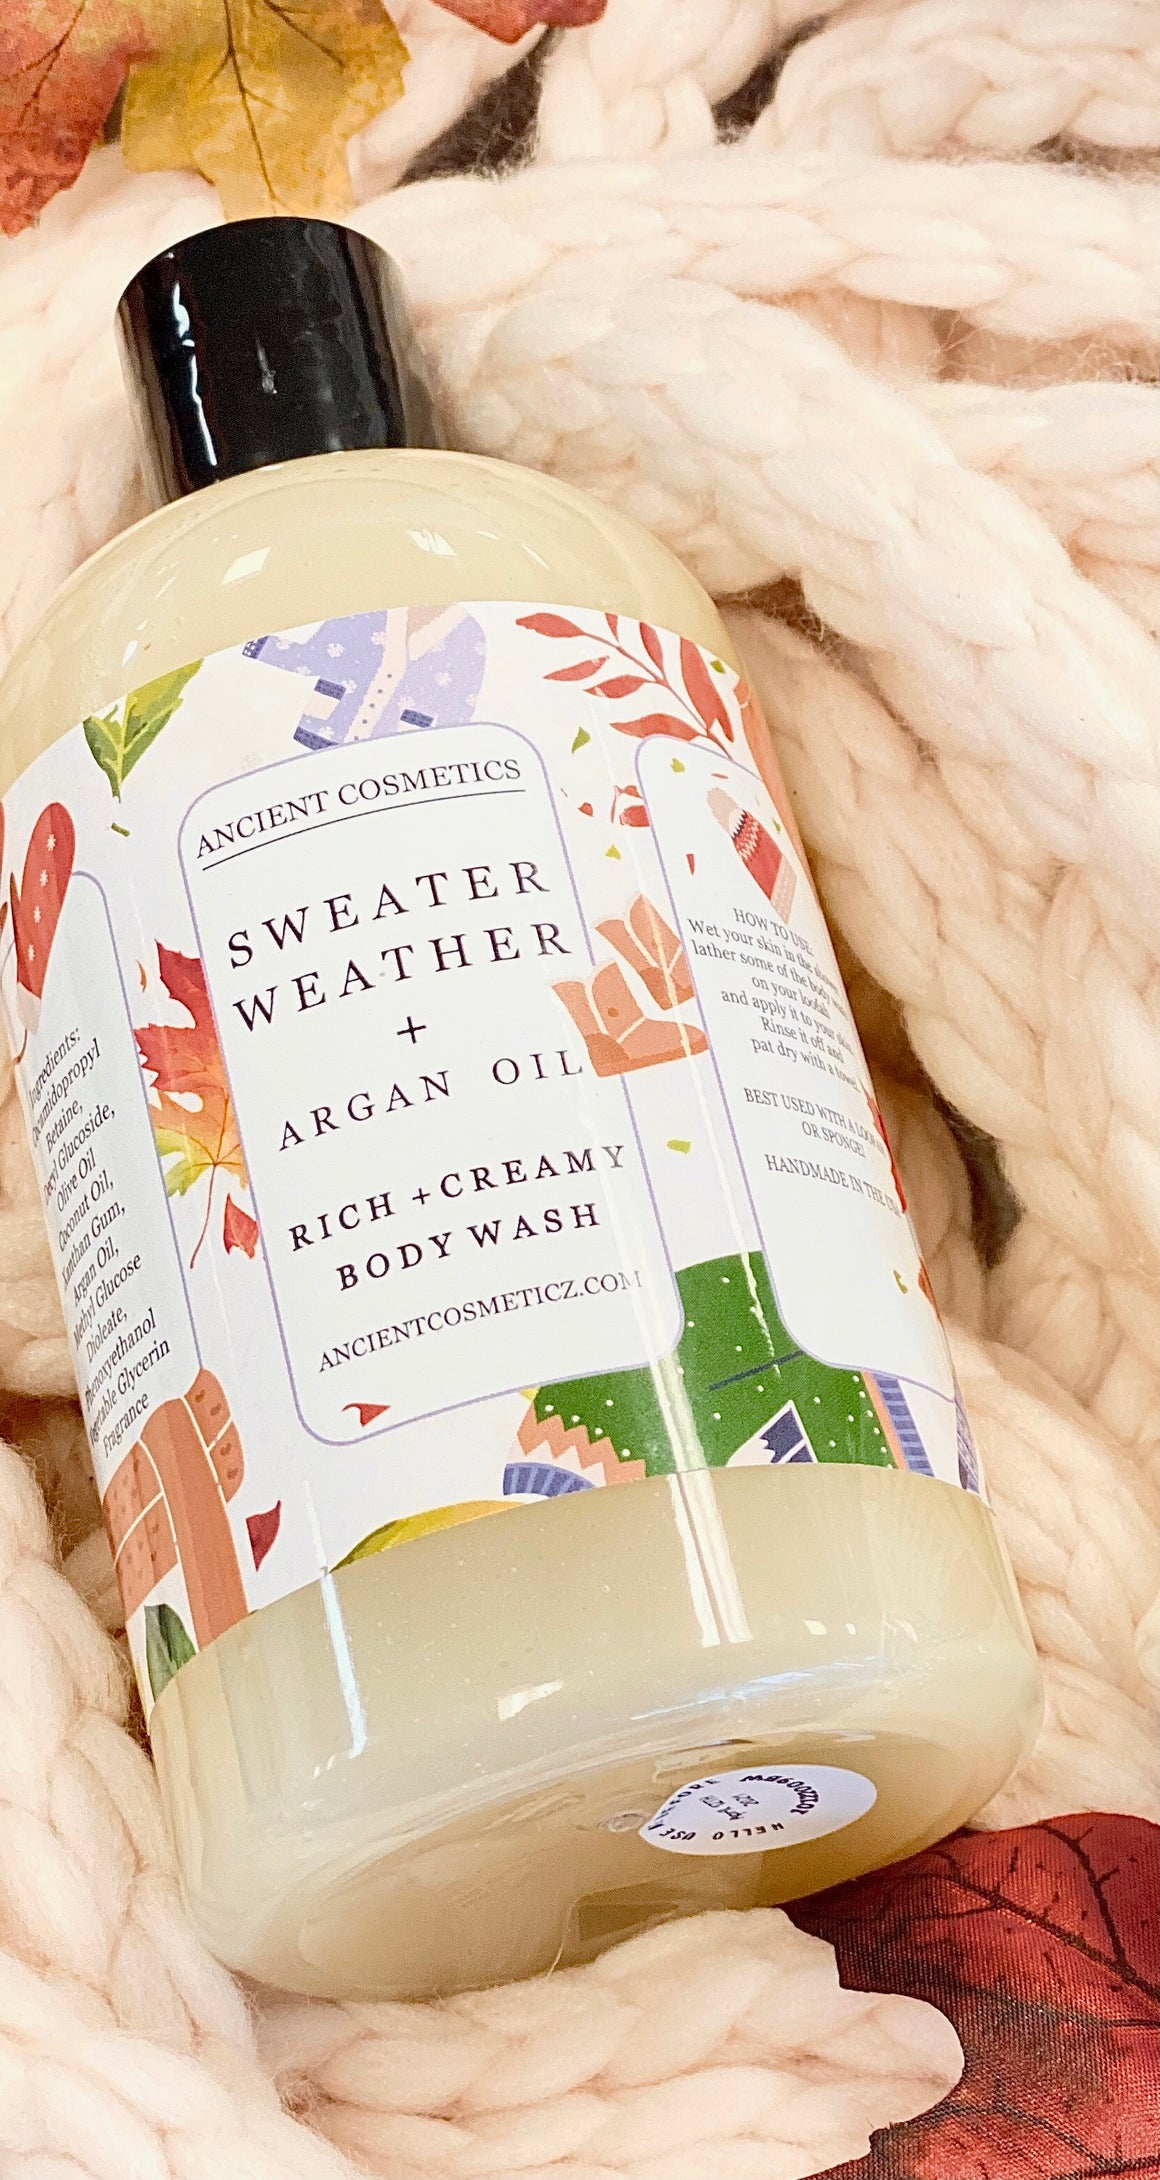 Sweater Weather + Argan Oil Body Wash